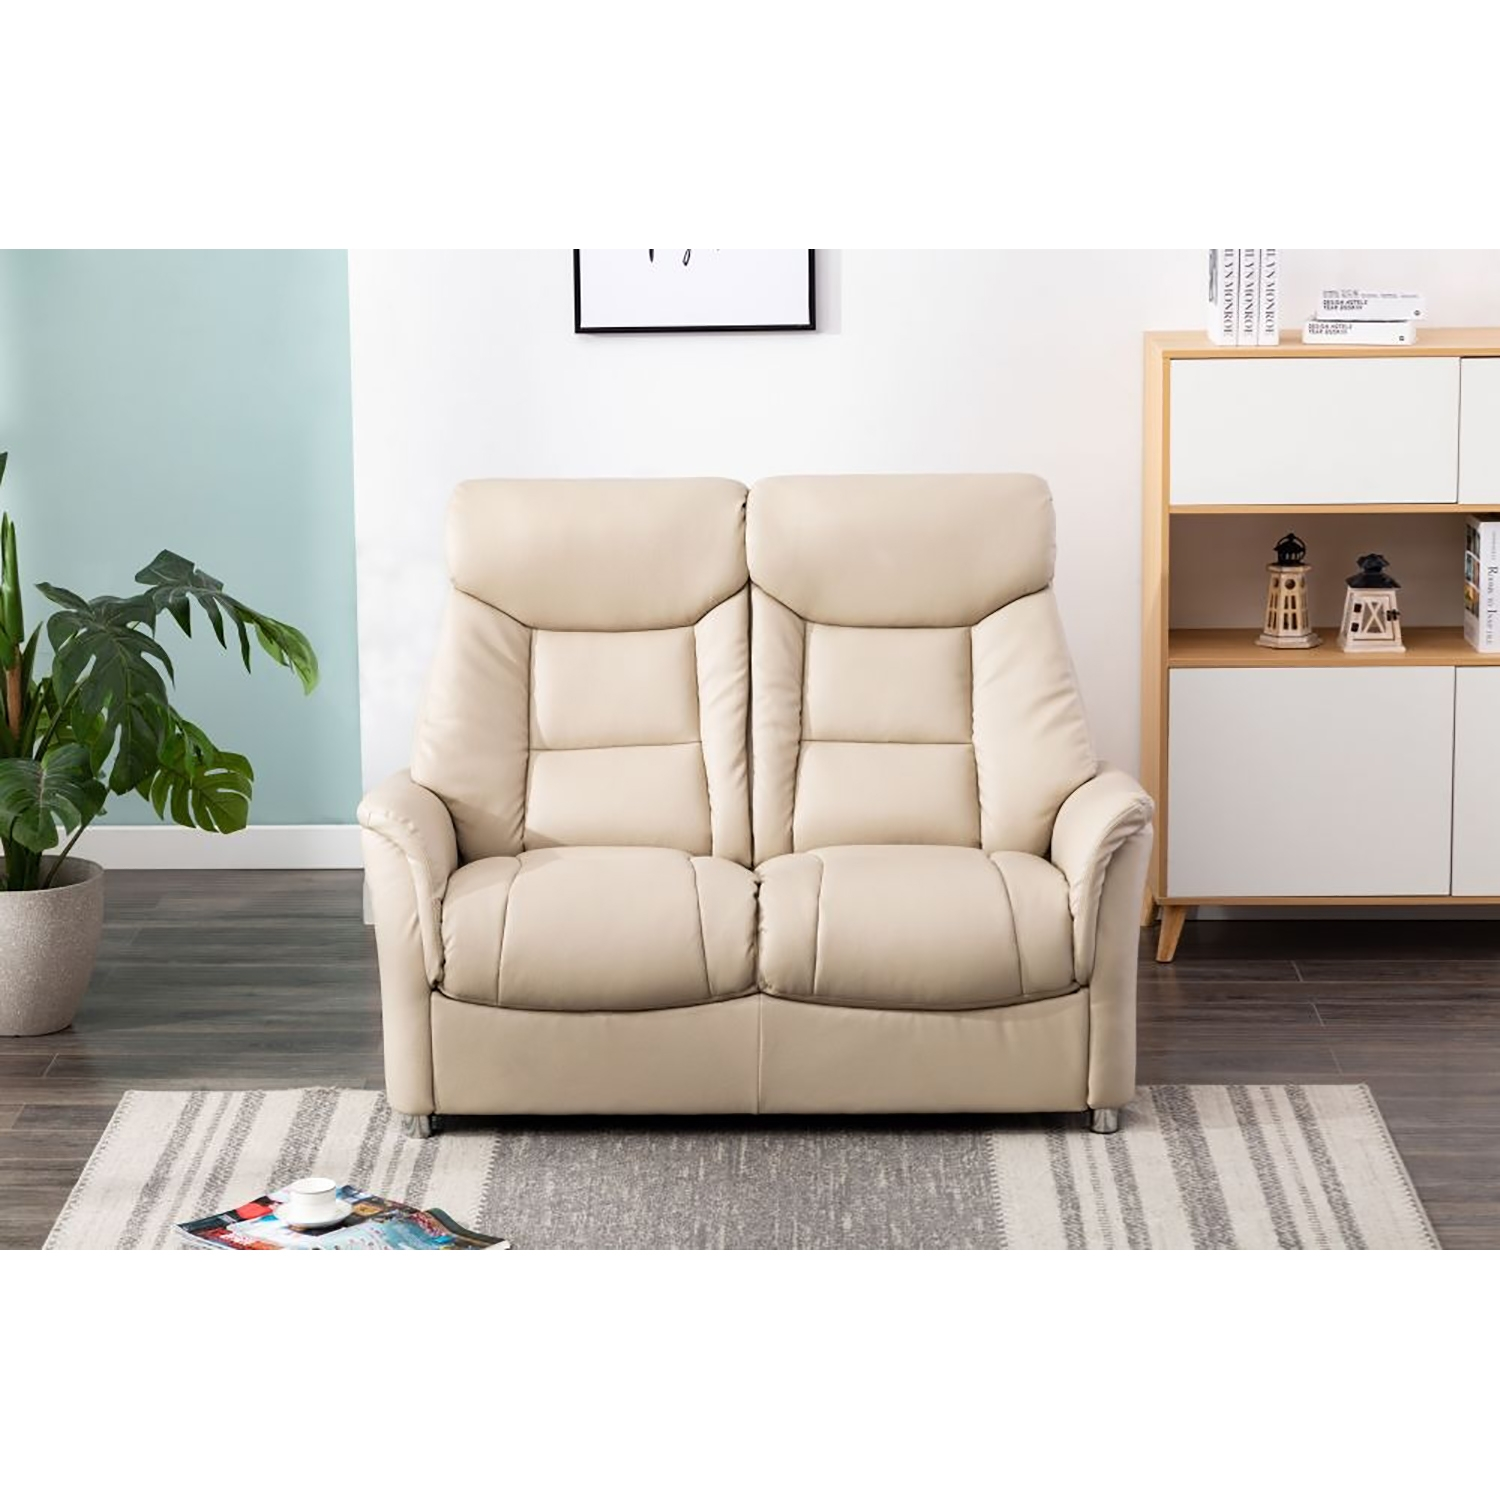 Image of Casa Bayonne Leather Look 2 Seater Sofa